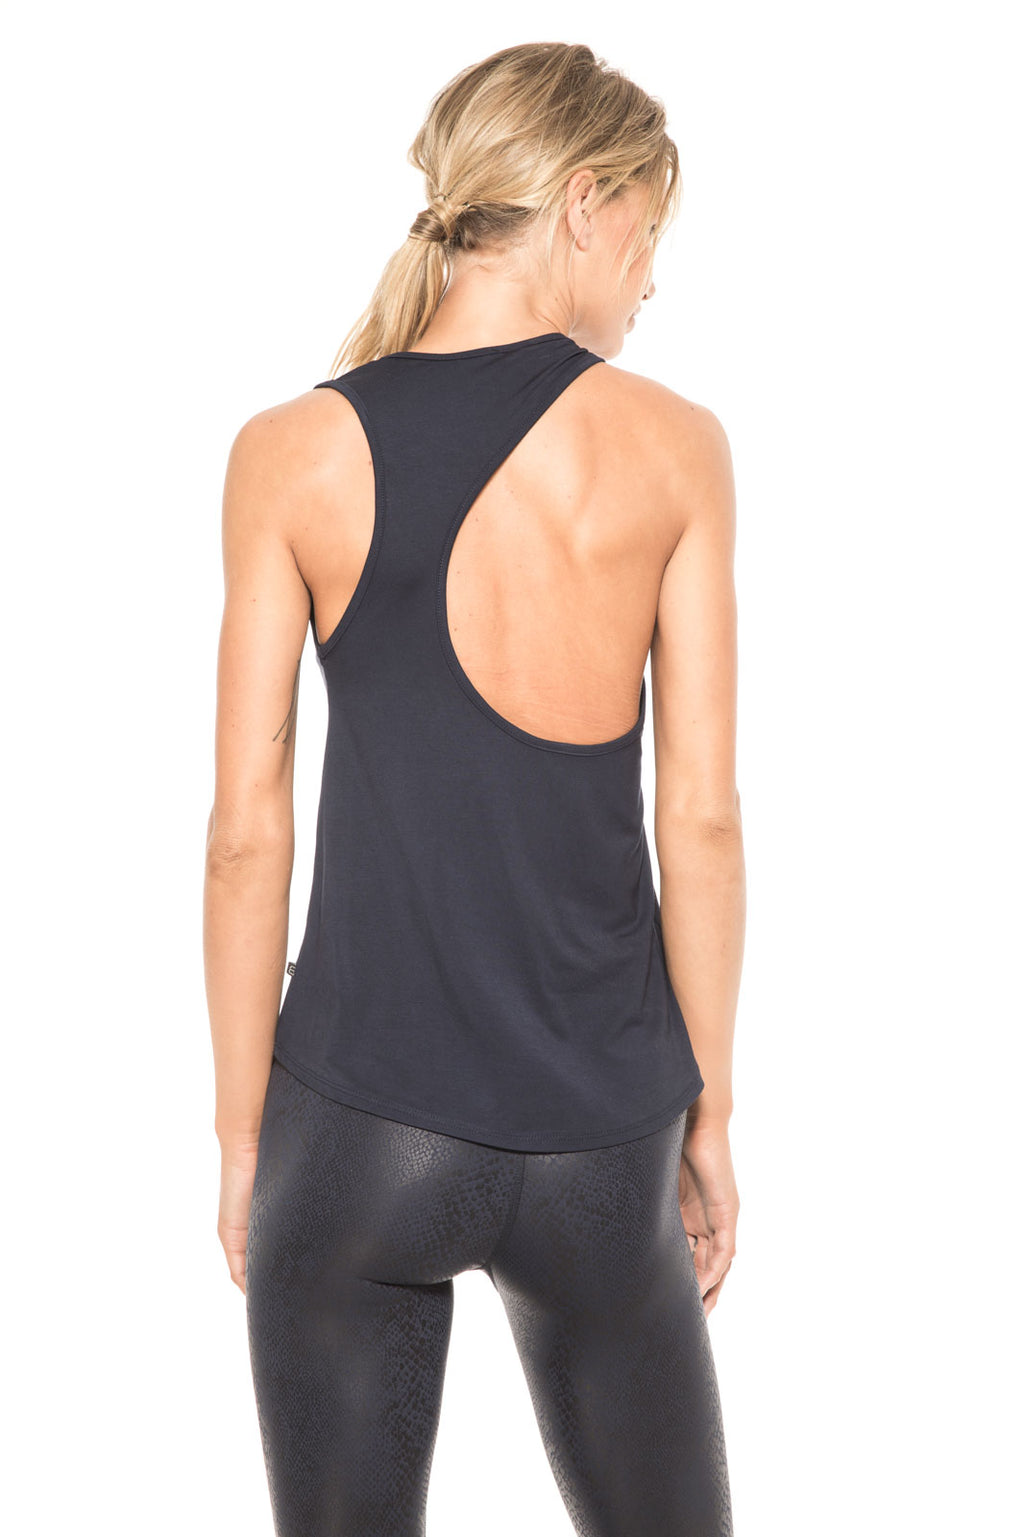 Women - Apparel - Active Wear - Bottom:Body Language Sportswear:Naomi Top:WKND threads